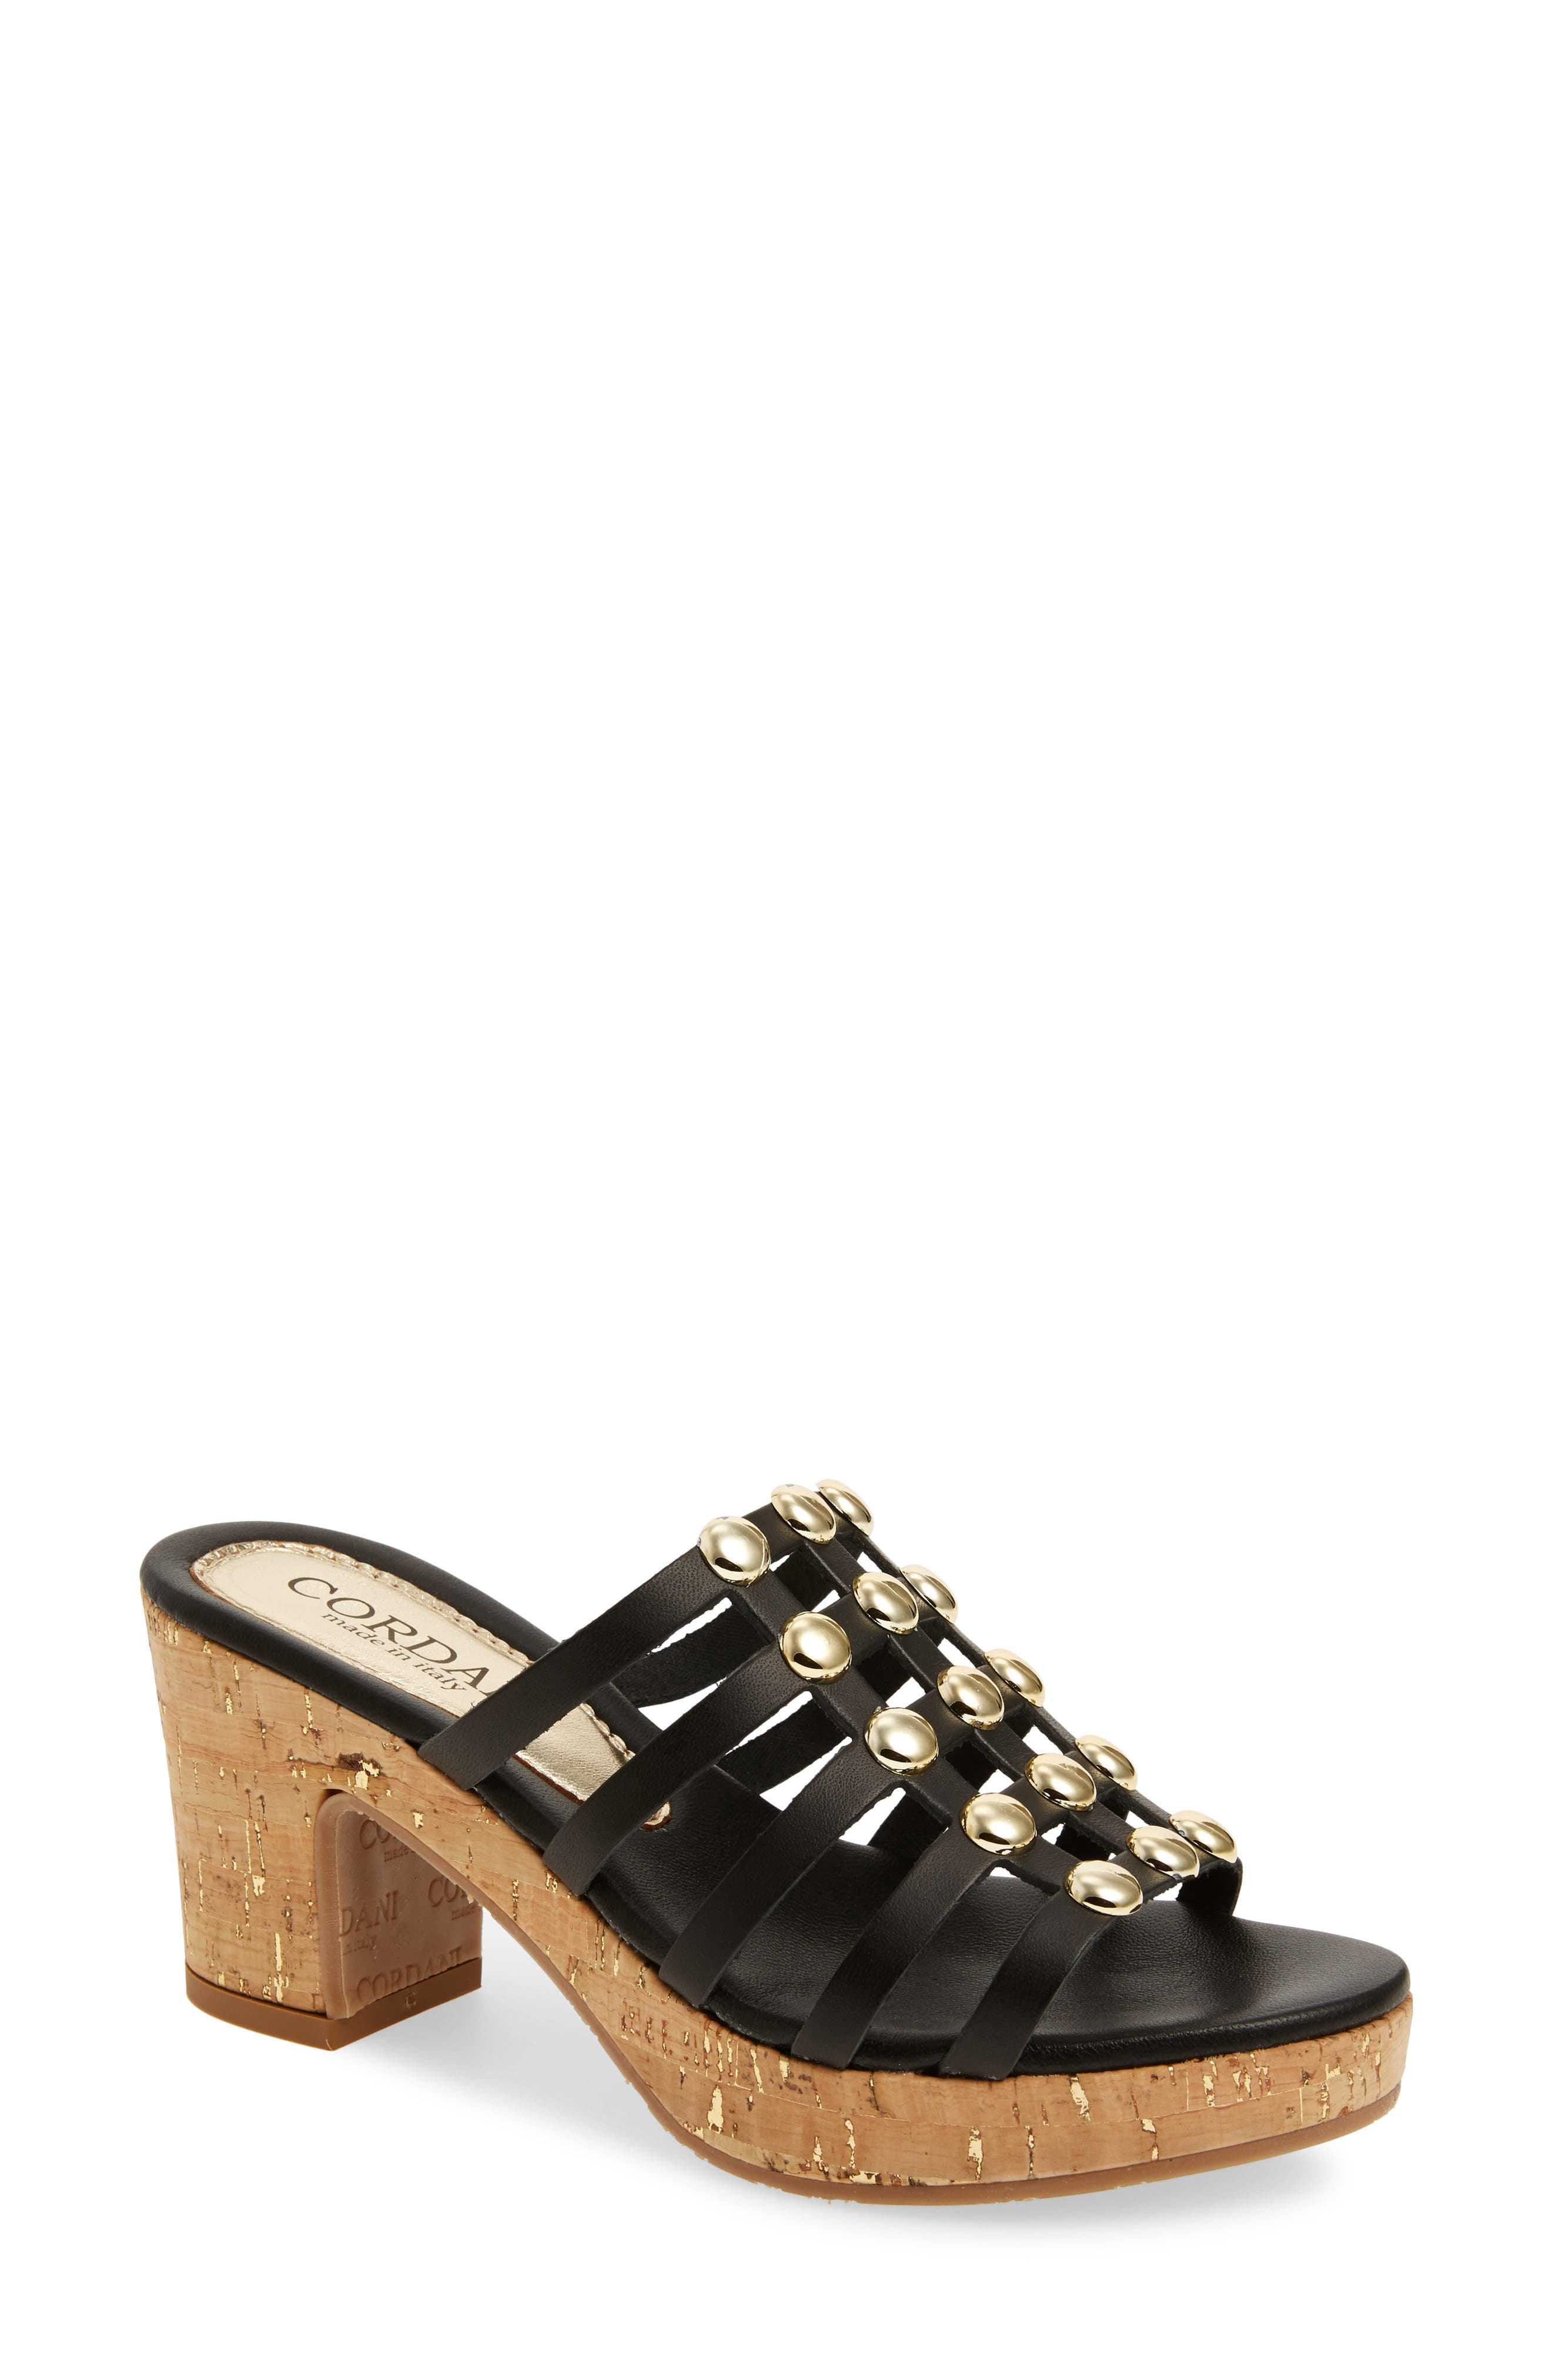 Keane Studded Slide Sandal,                         Main,                         color, BLACK LEATHER